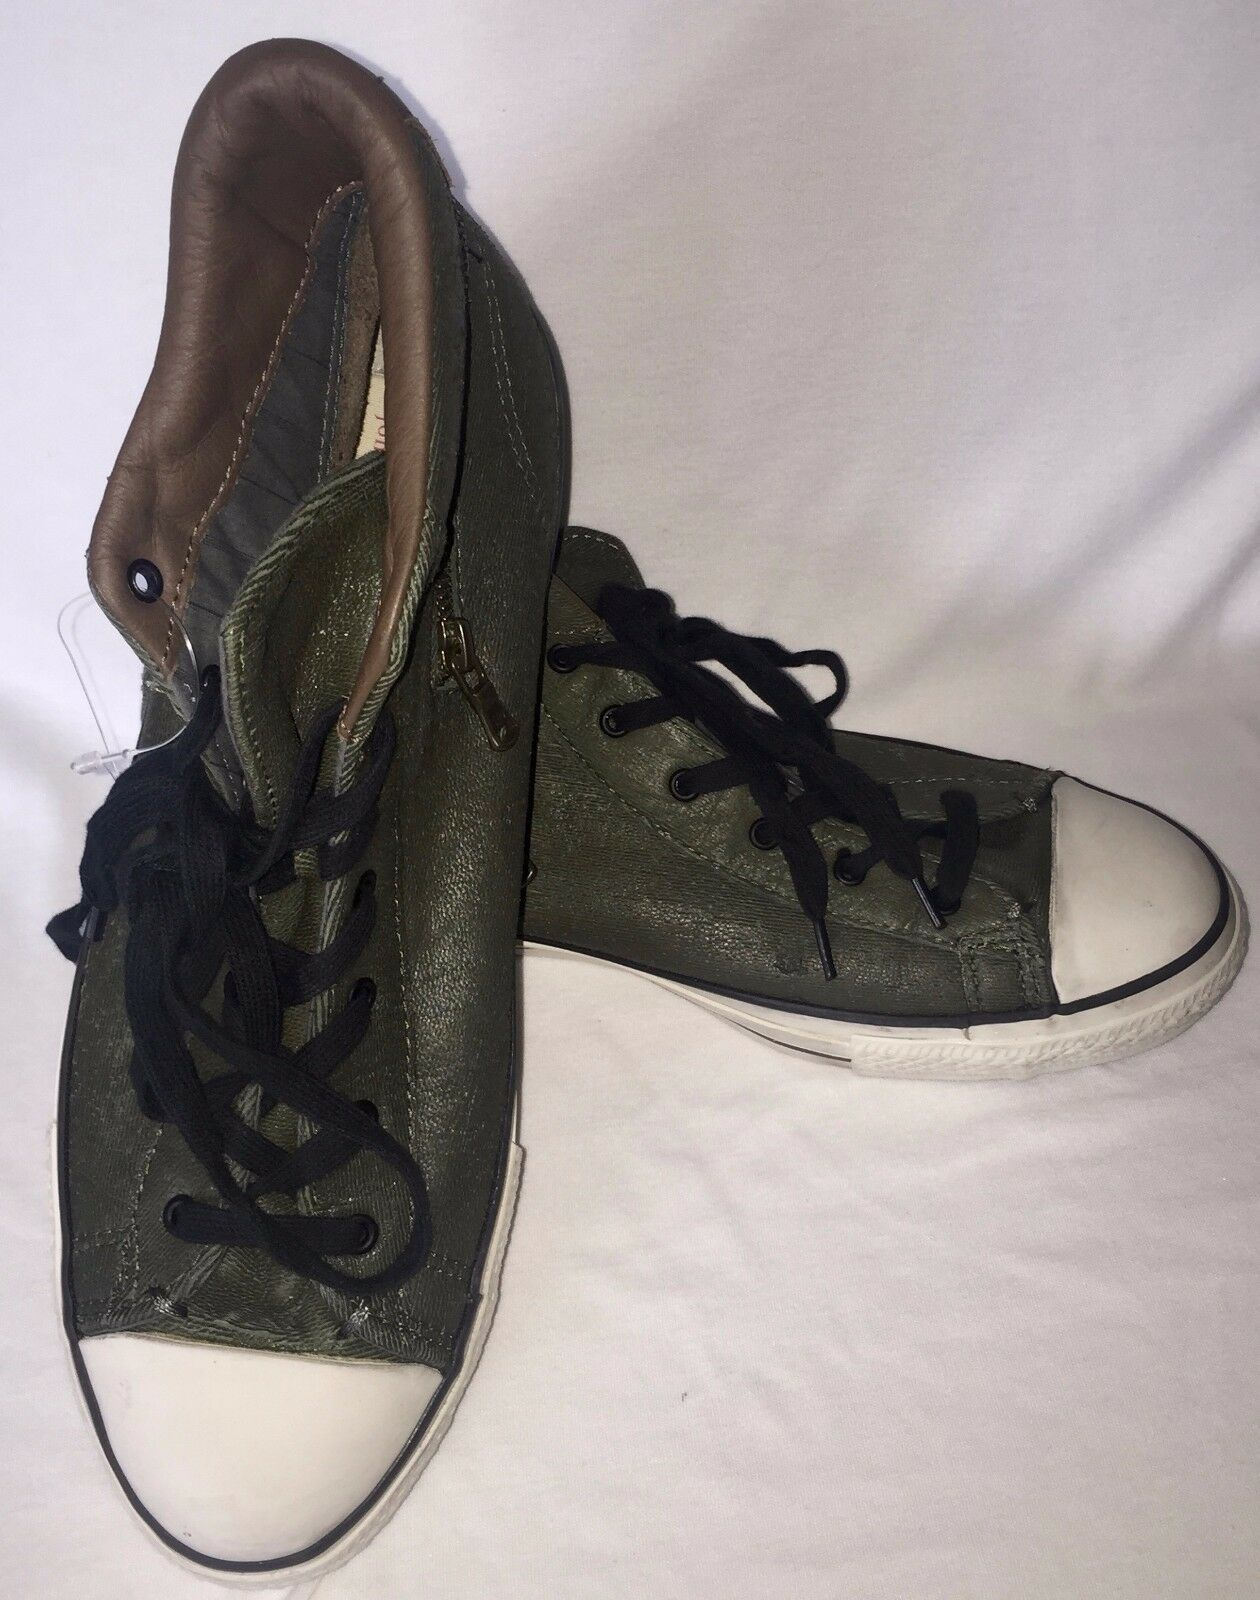 NWOB Men Green Converse Hi Top All Star Distressed look Sneakers 12 M  145380C